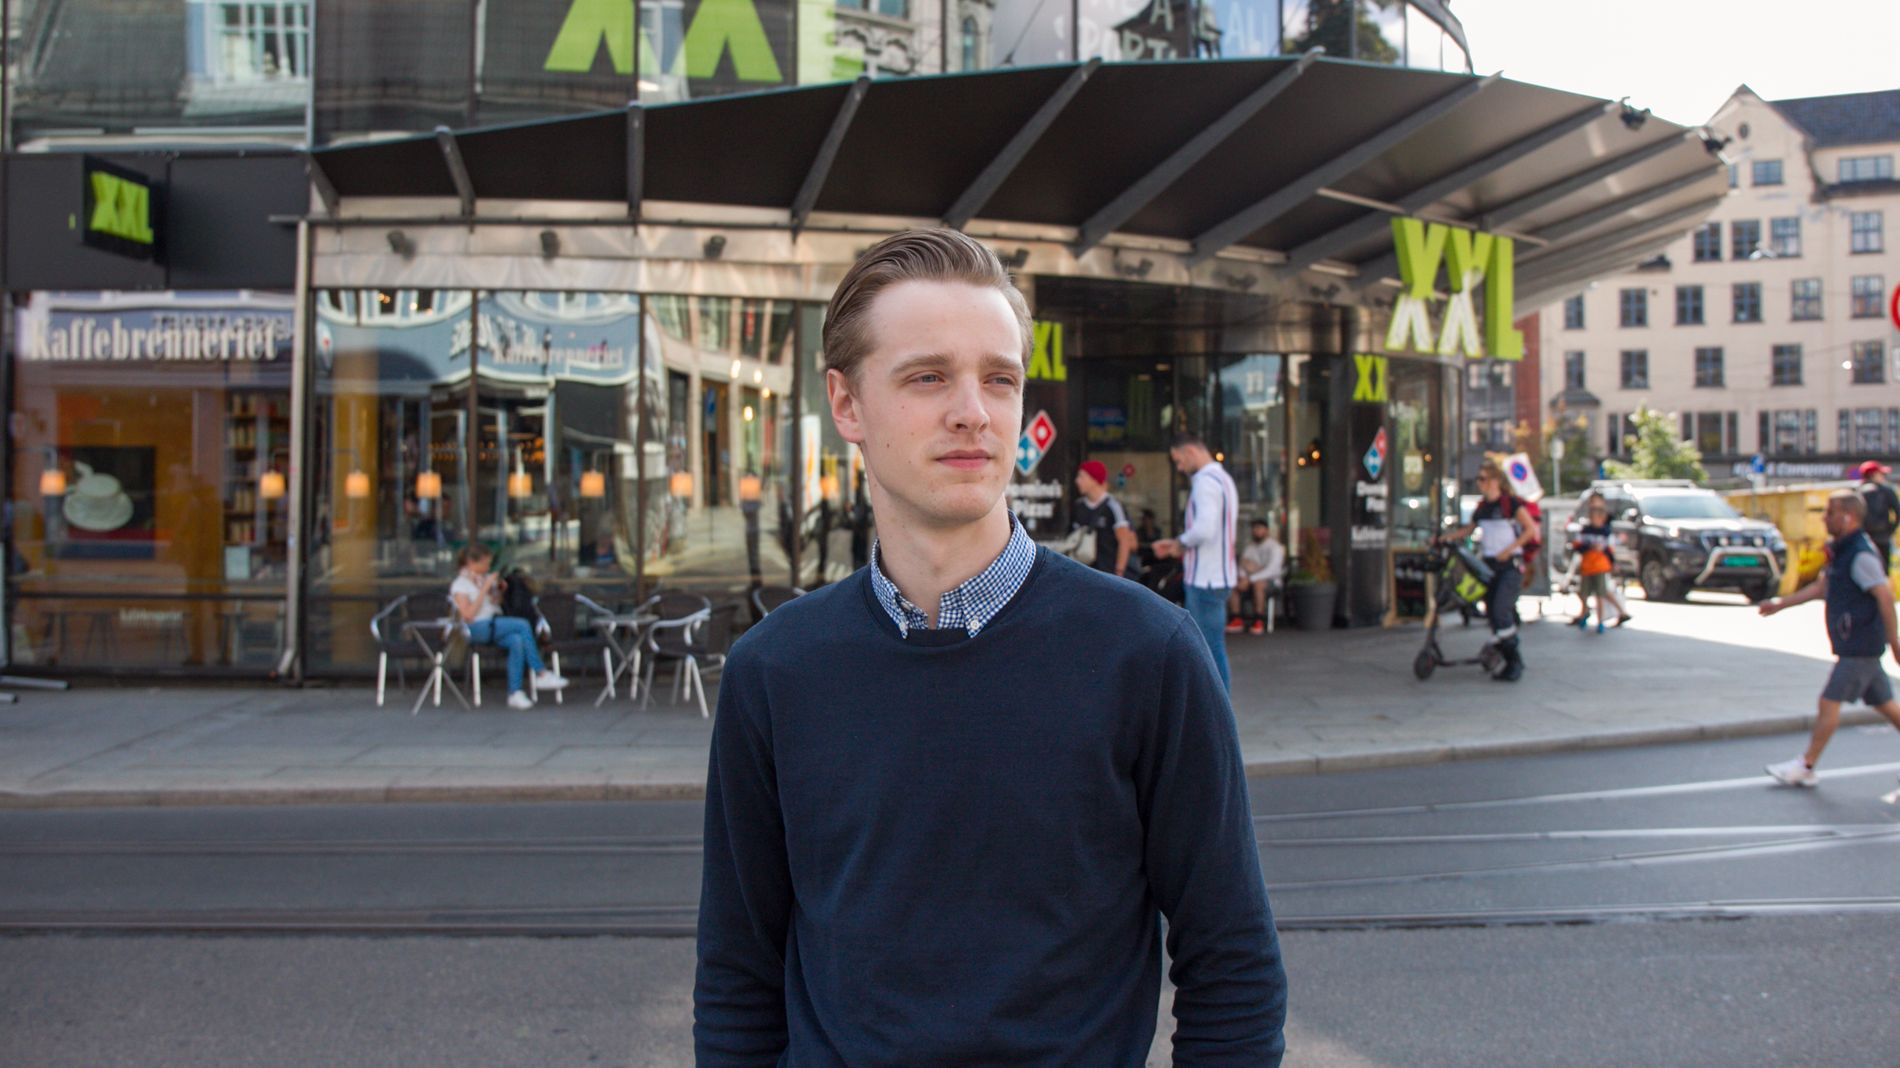 HISTORY OF JUKS: Christian Sandmo Olsen became the middle manager in XXL at the age of 20. It meant being part of a system where employees made sales figures, he says.